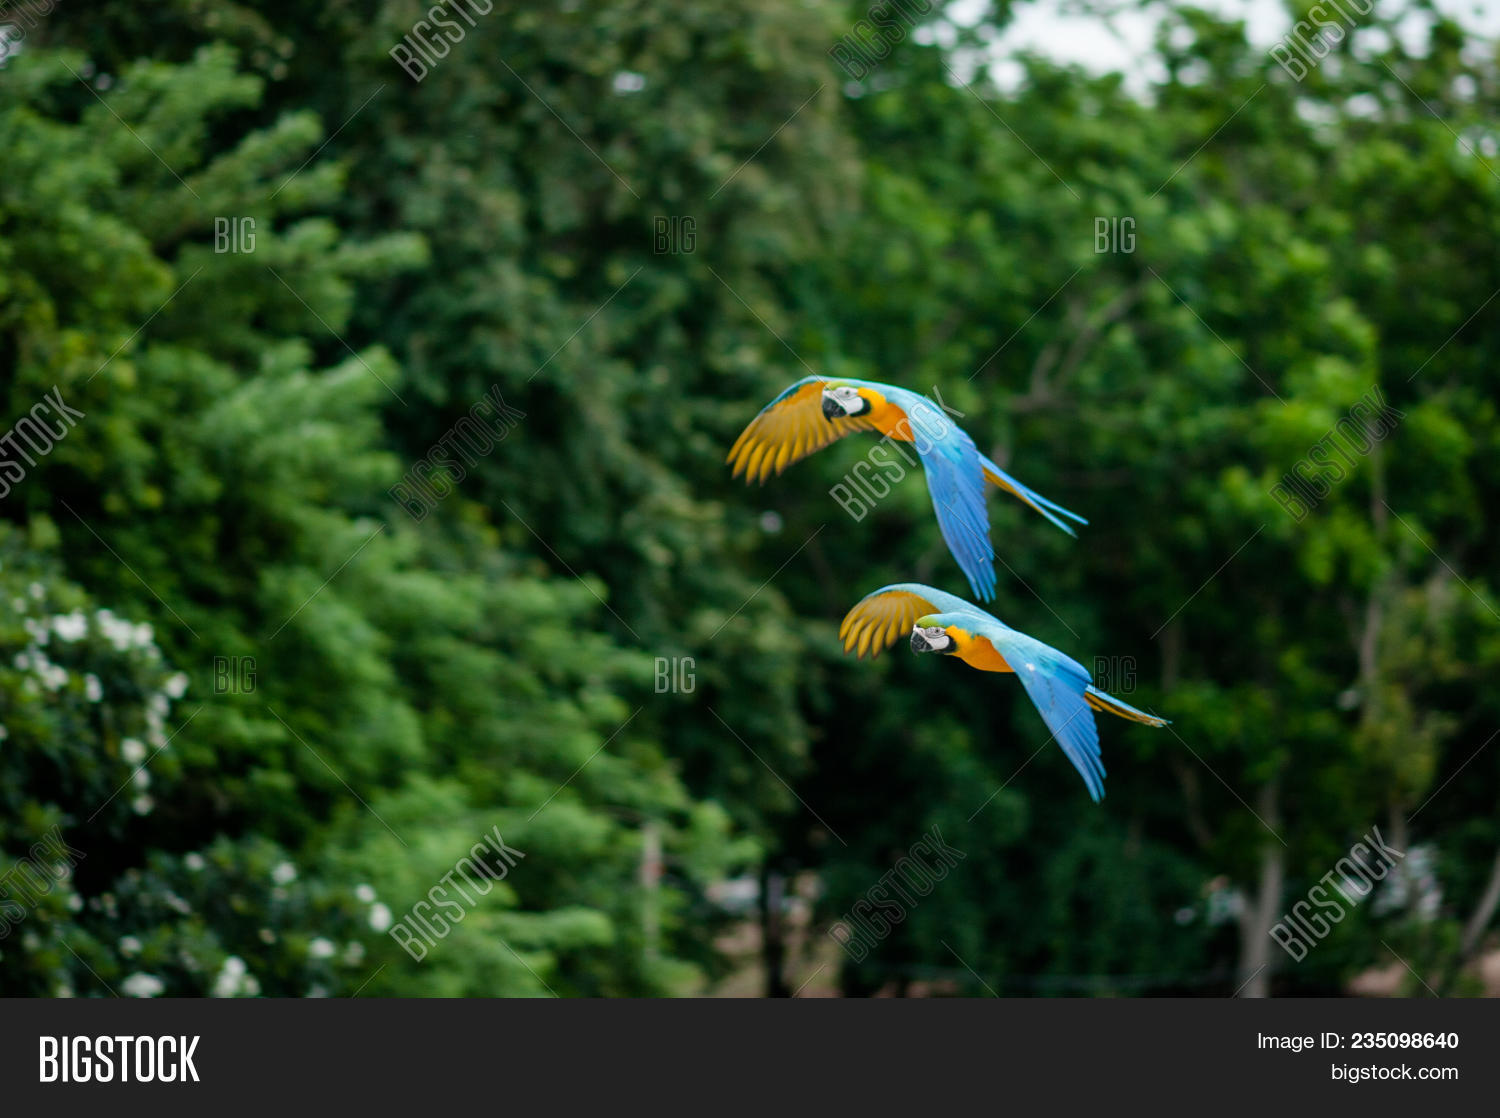 Two Flying Macaws Image Photo Free Trial Bigstock